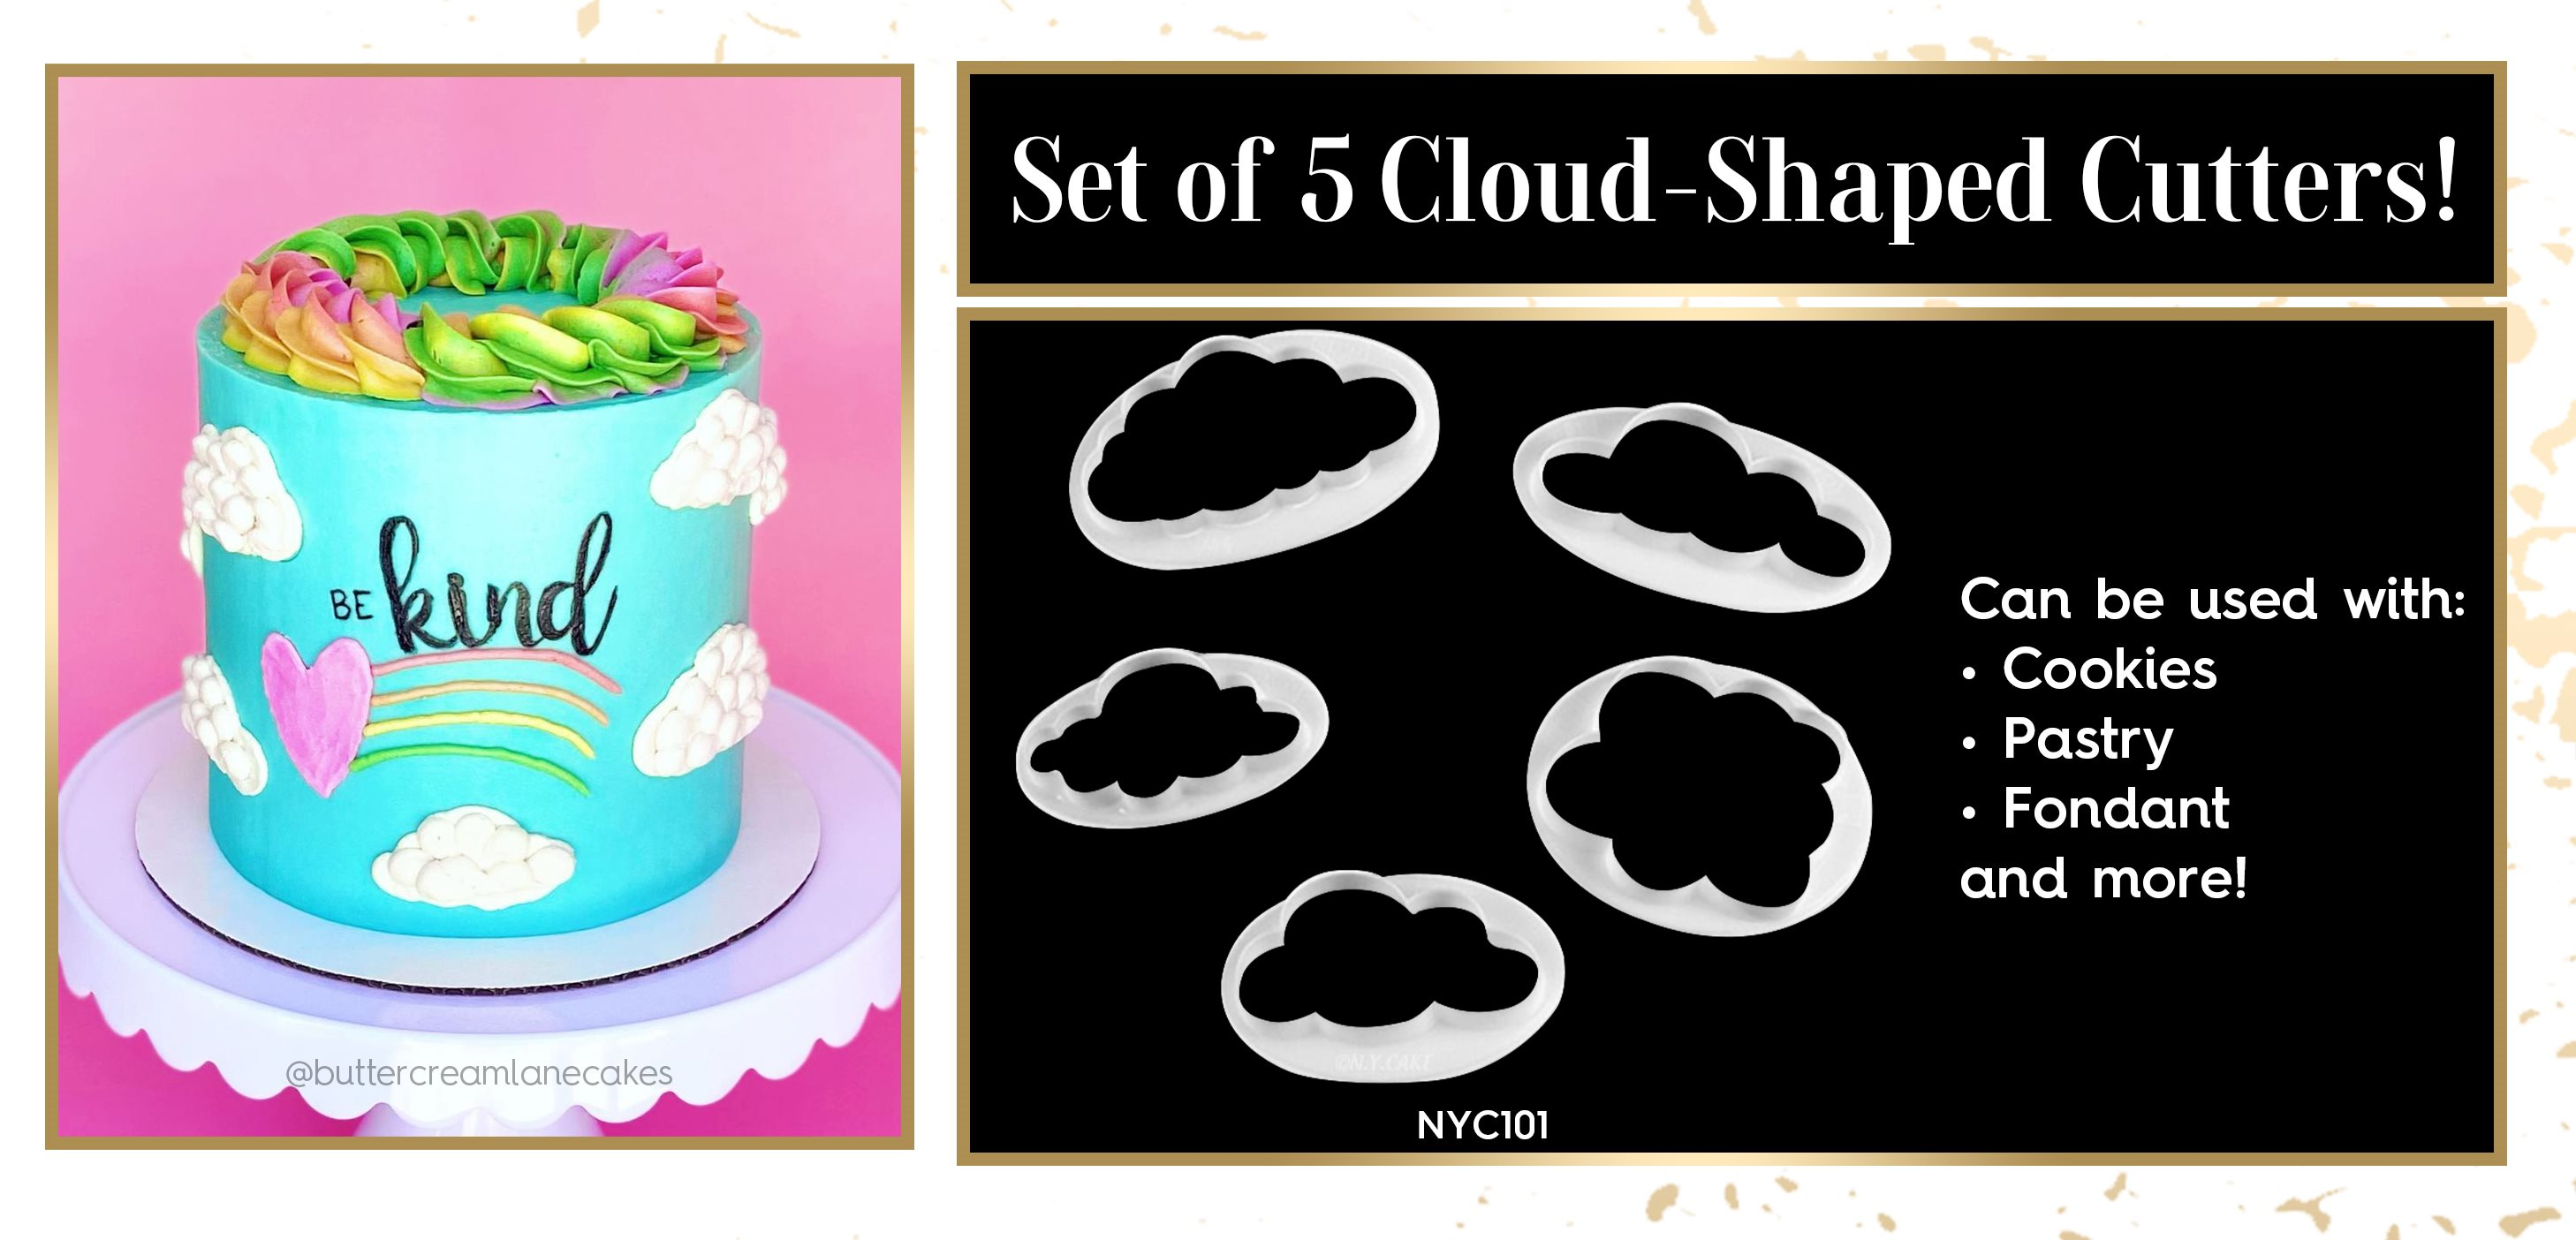 Cloud Shaped Pastry Cookie Fondant Cutter